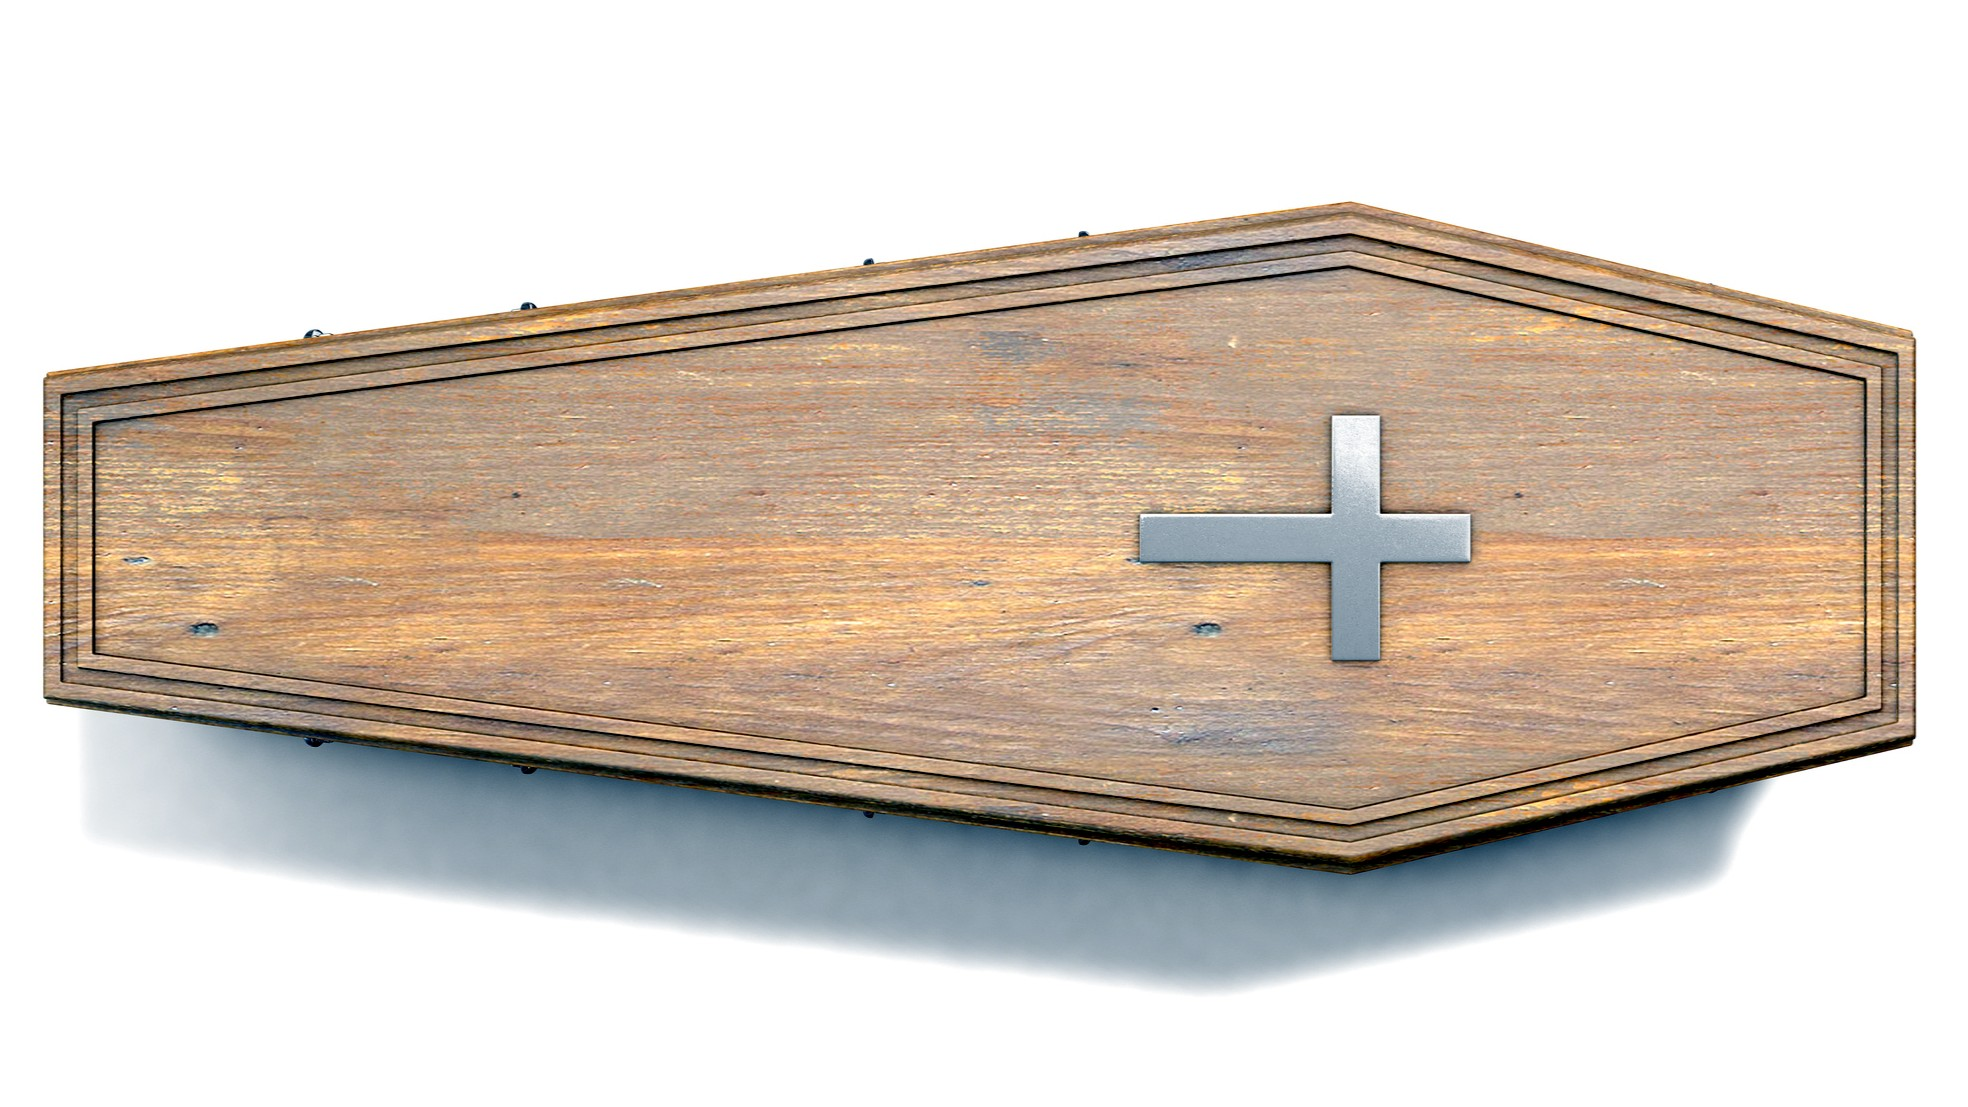 How To Build A Coffin From Scratch Or Plans Lovetoknow